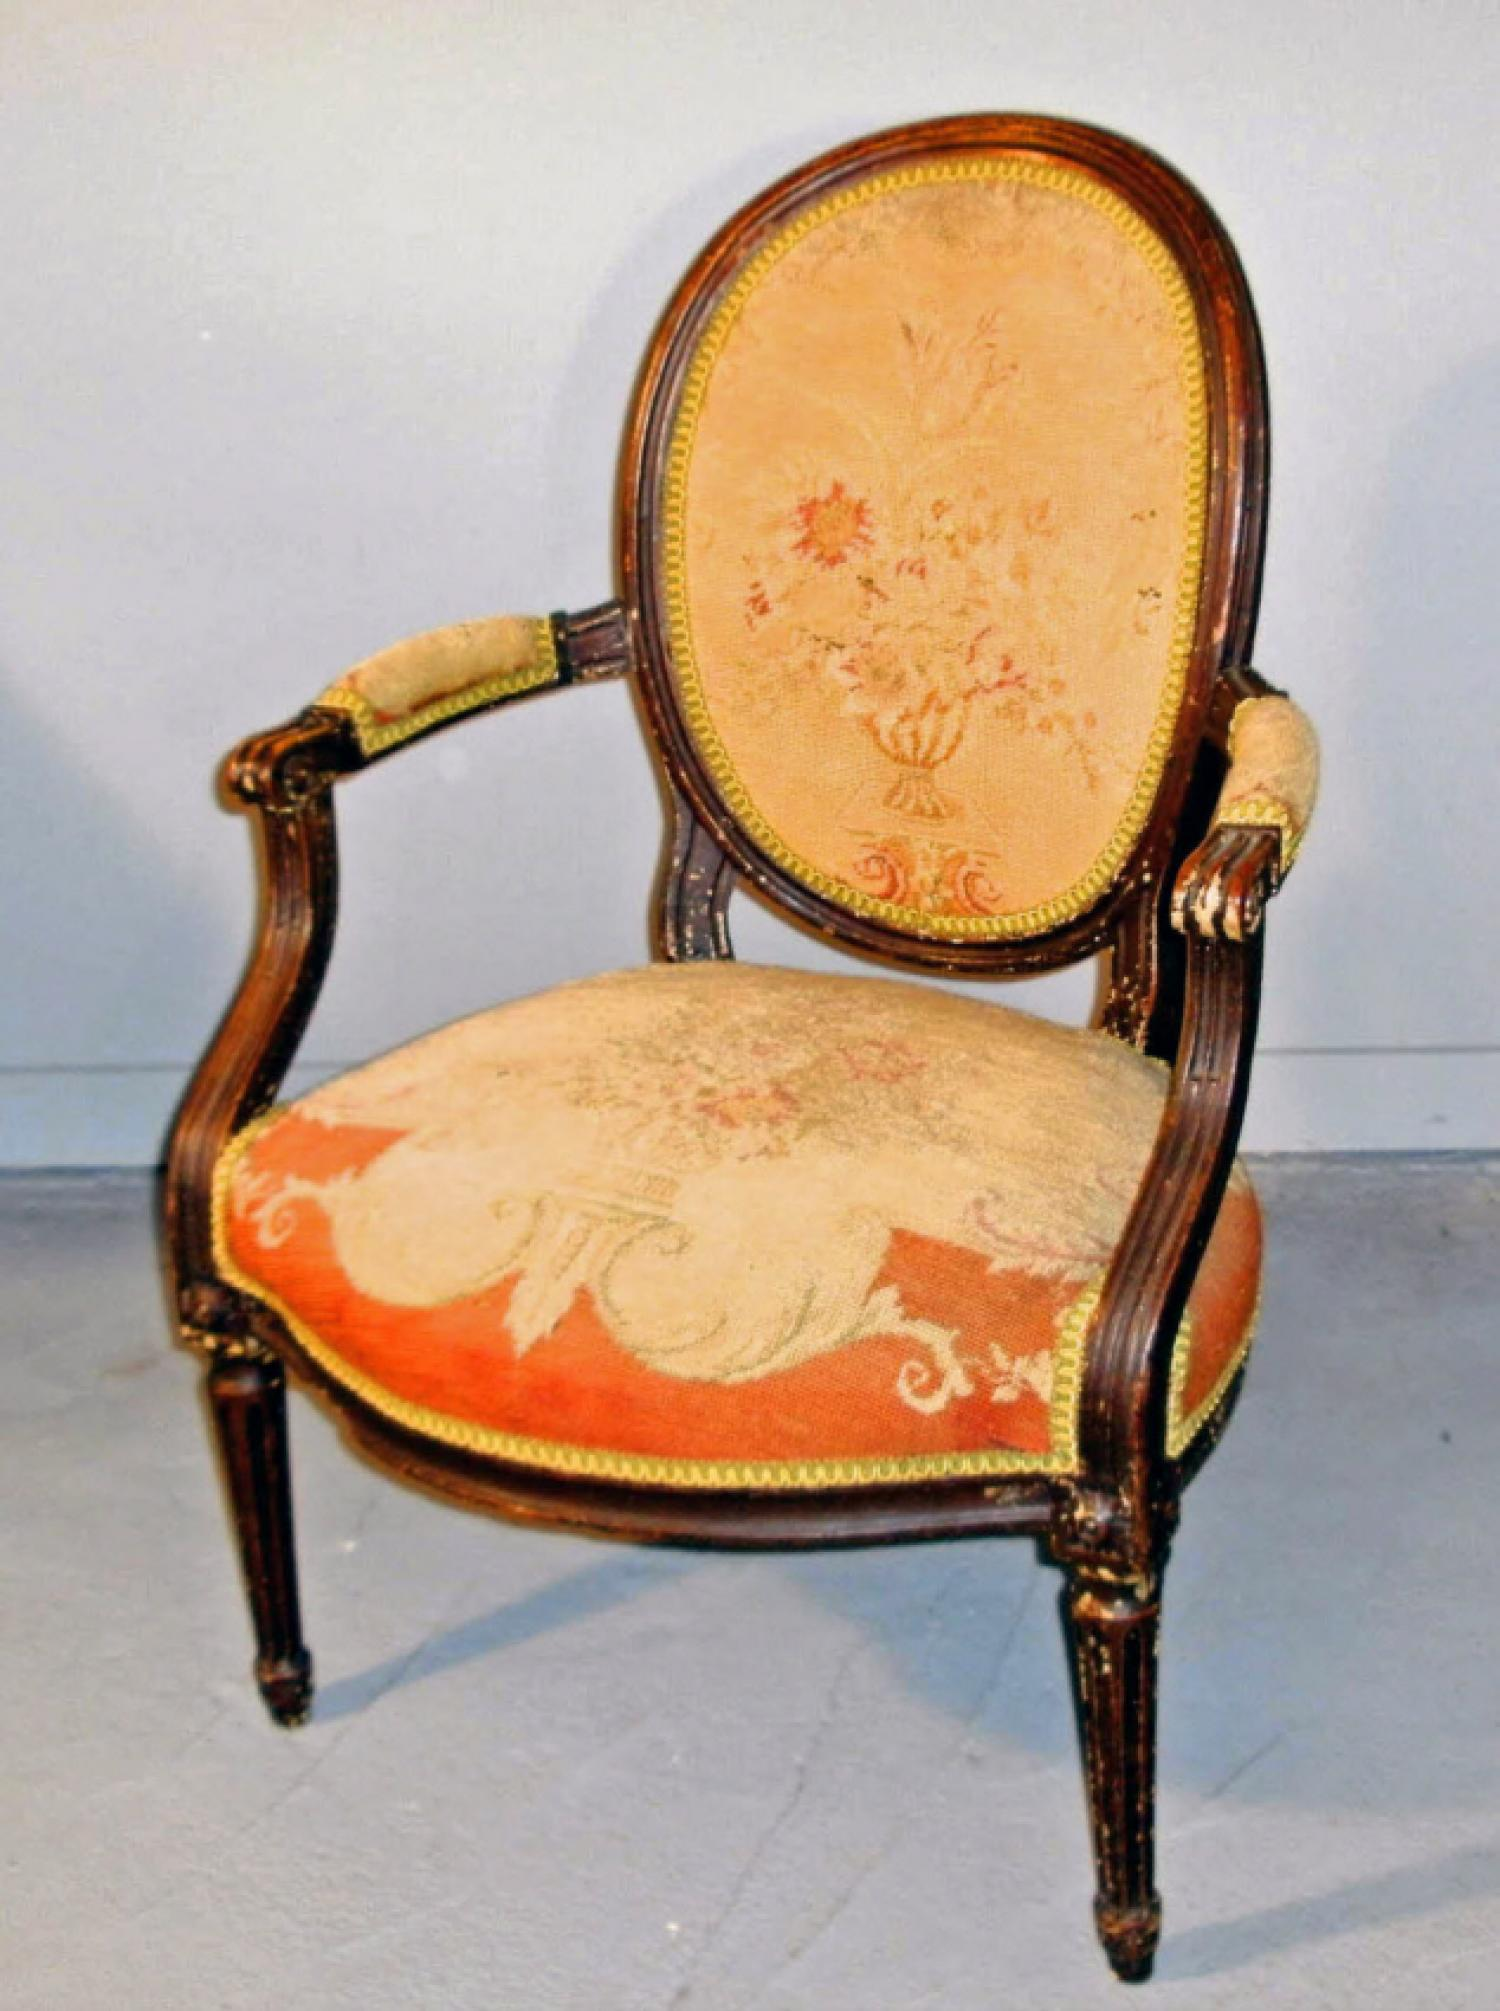 Louis XVI style fauteuil open arm chair with needlepoint